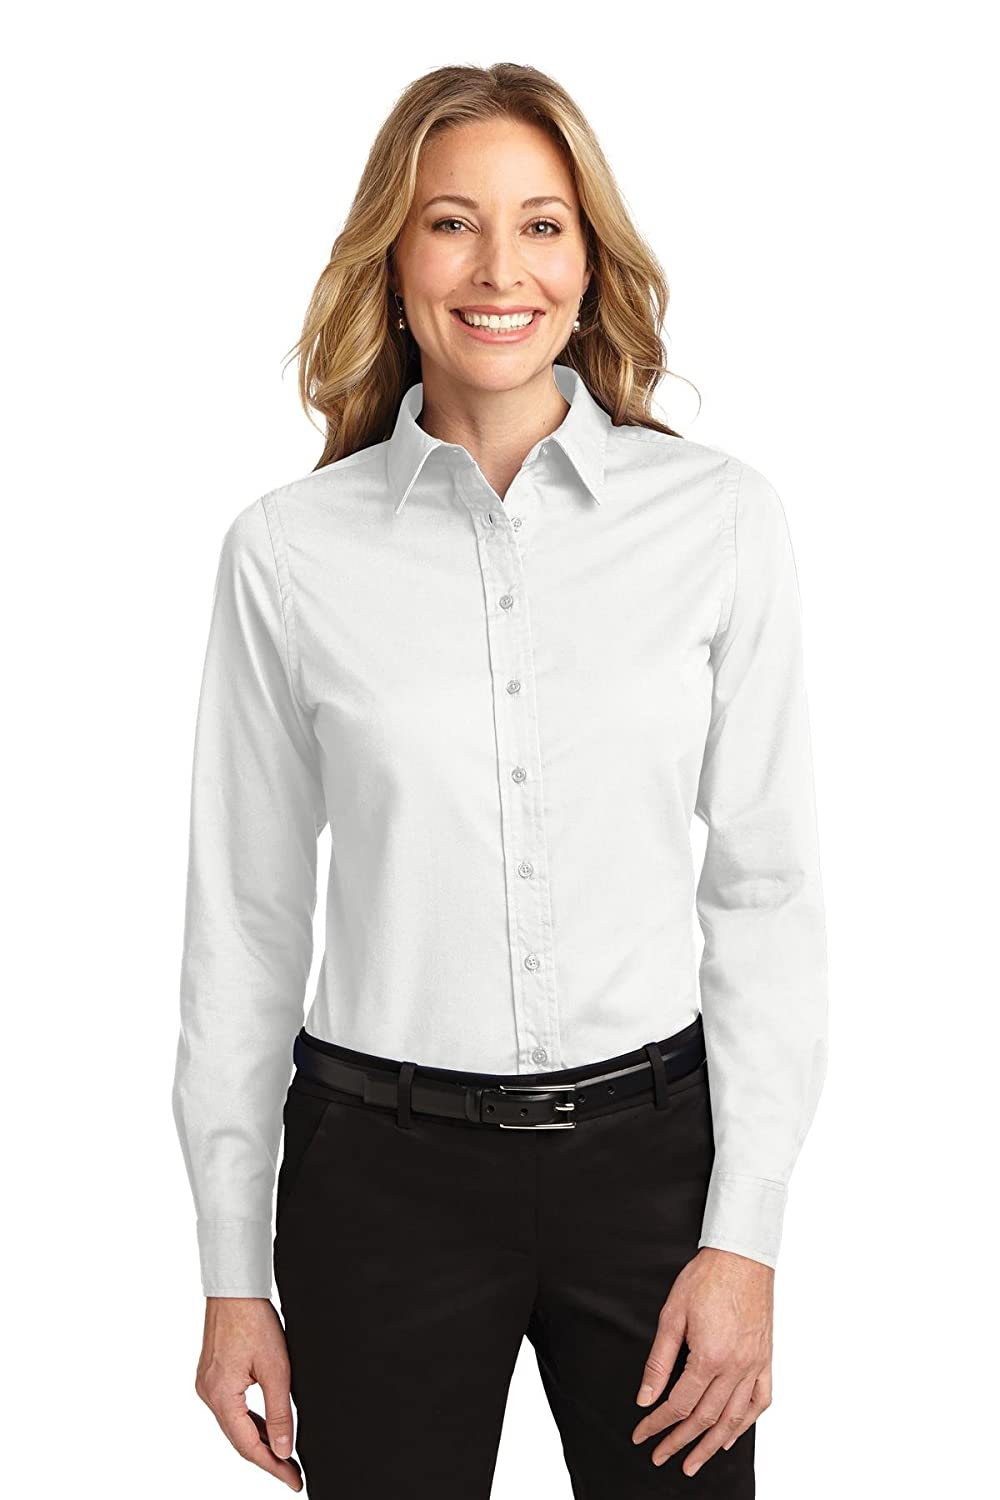 Port Authority Women's Long Sleeve Easy Care Shirt Port Authority L608